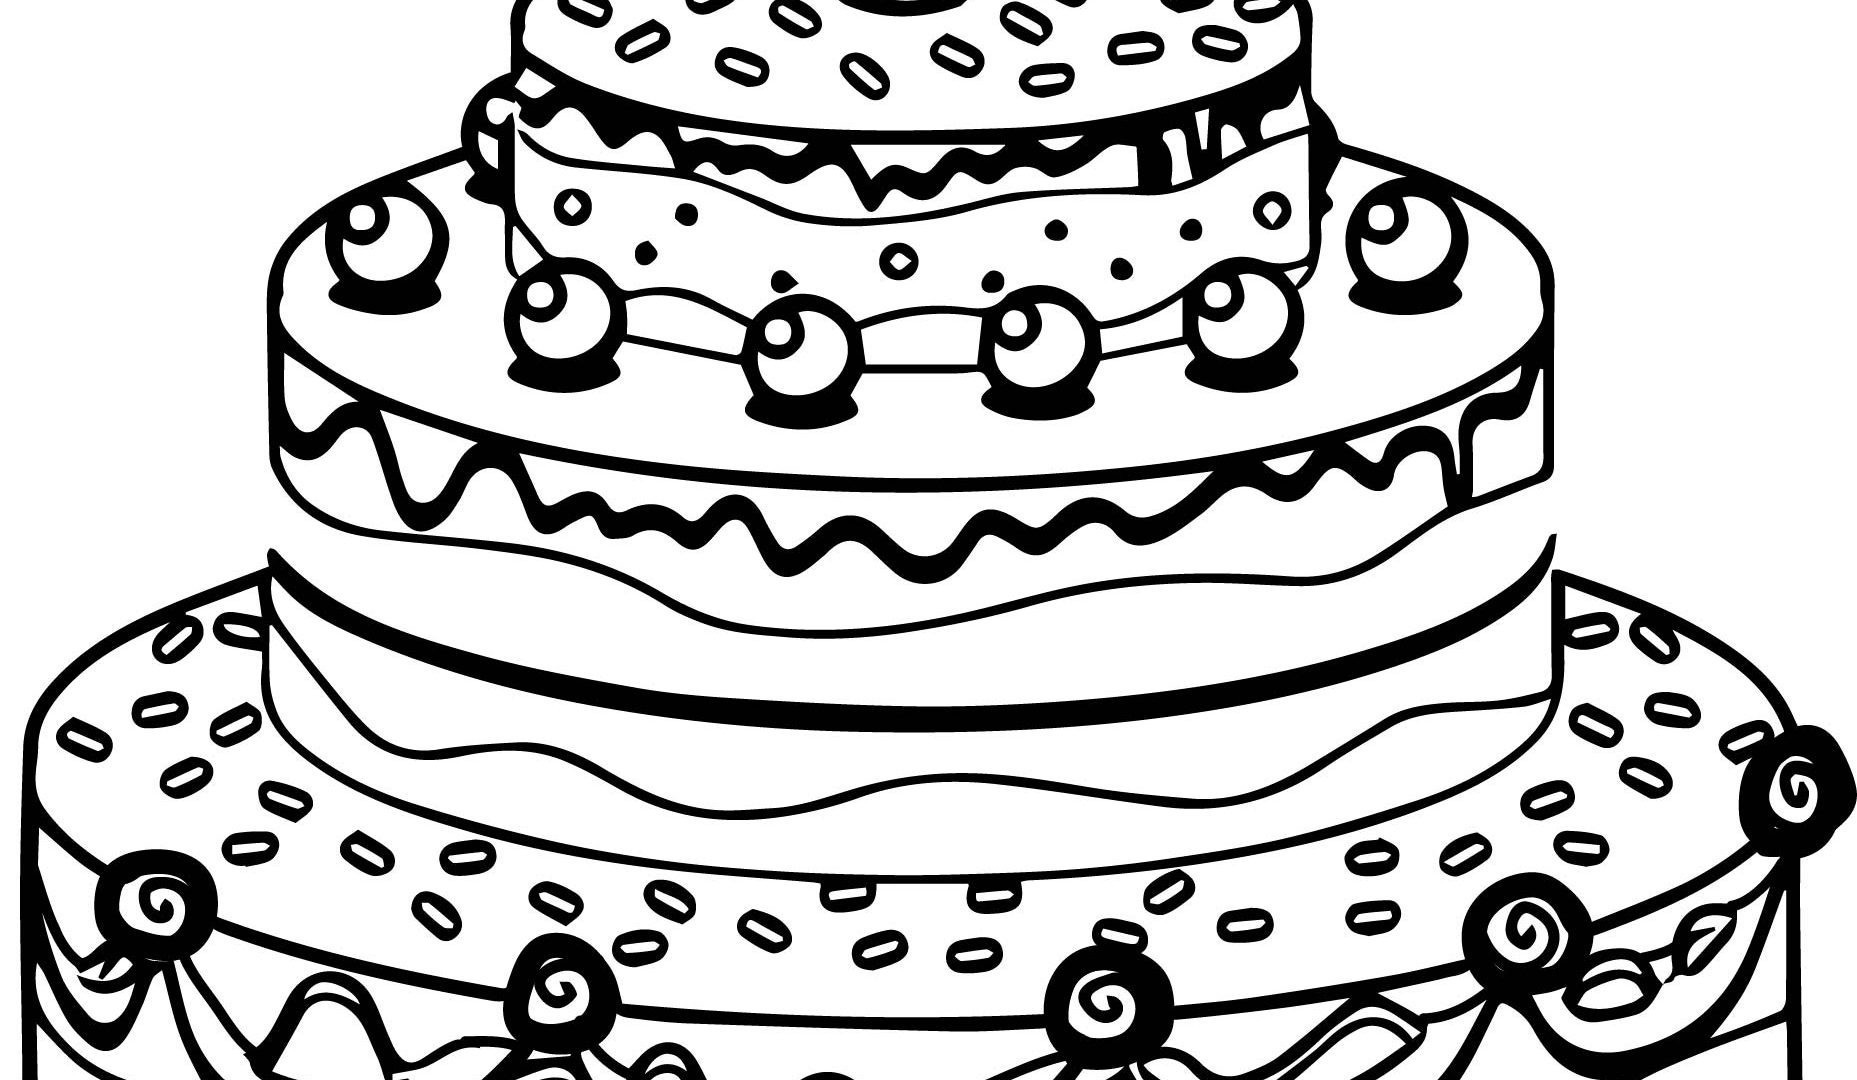 how to draw a birthday cake how to draw a birthday cake how birthday draw to cake a